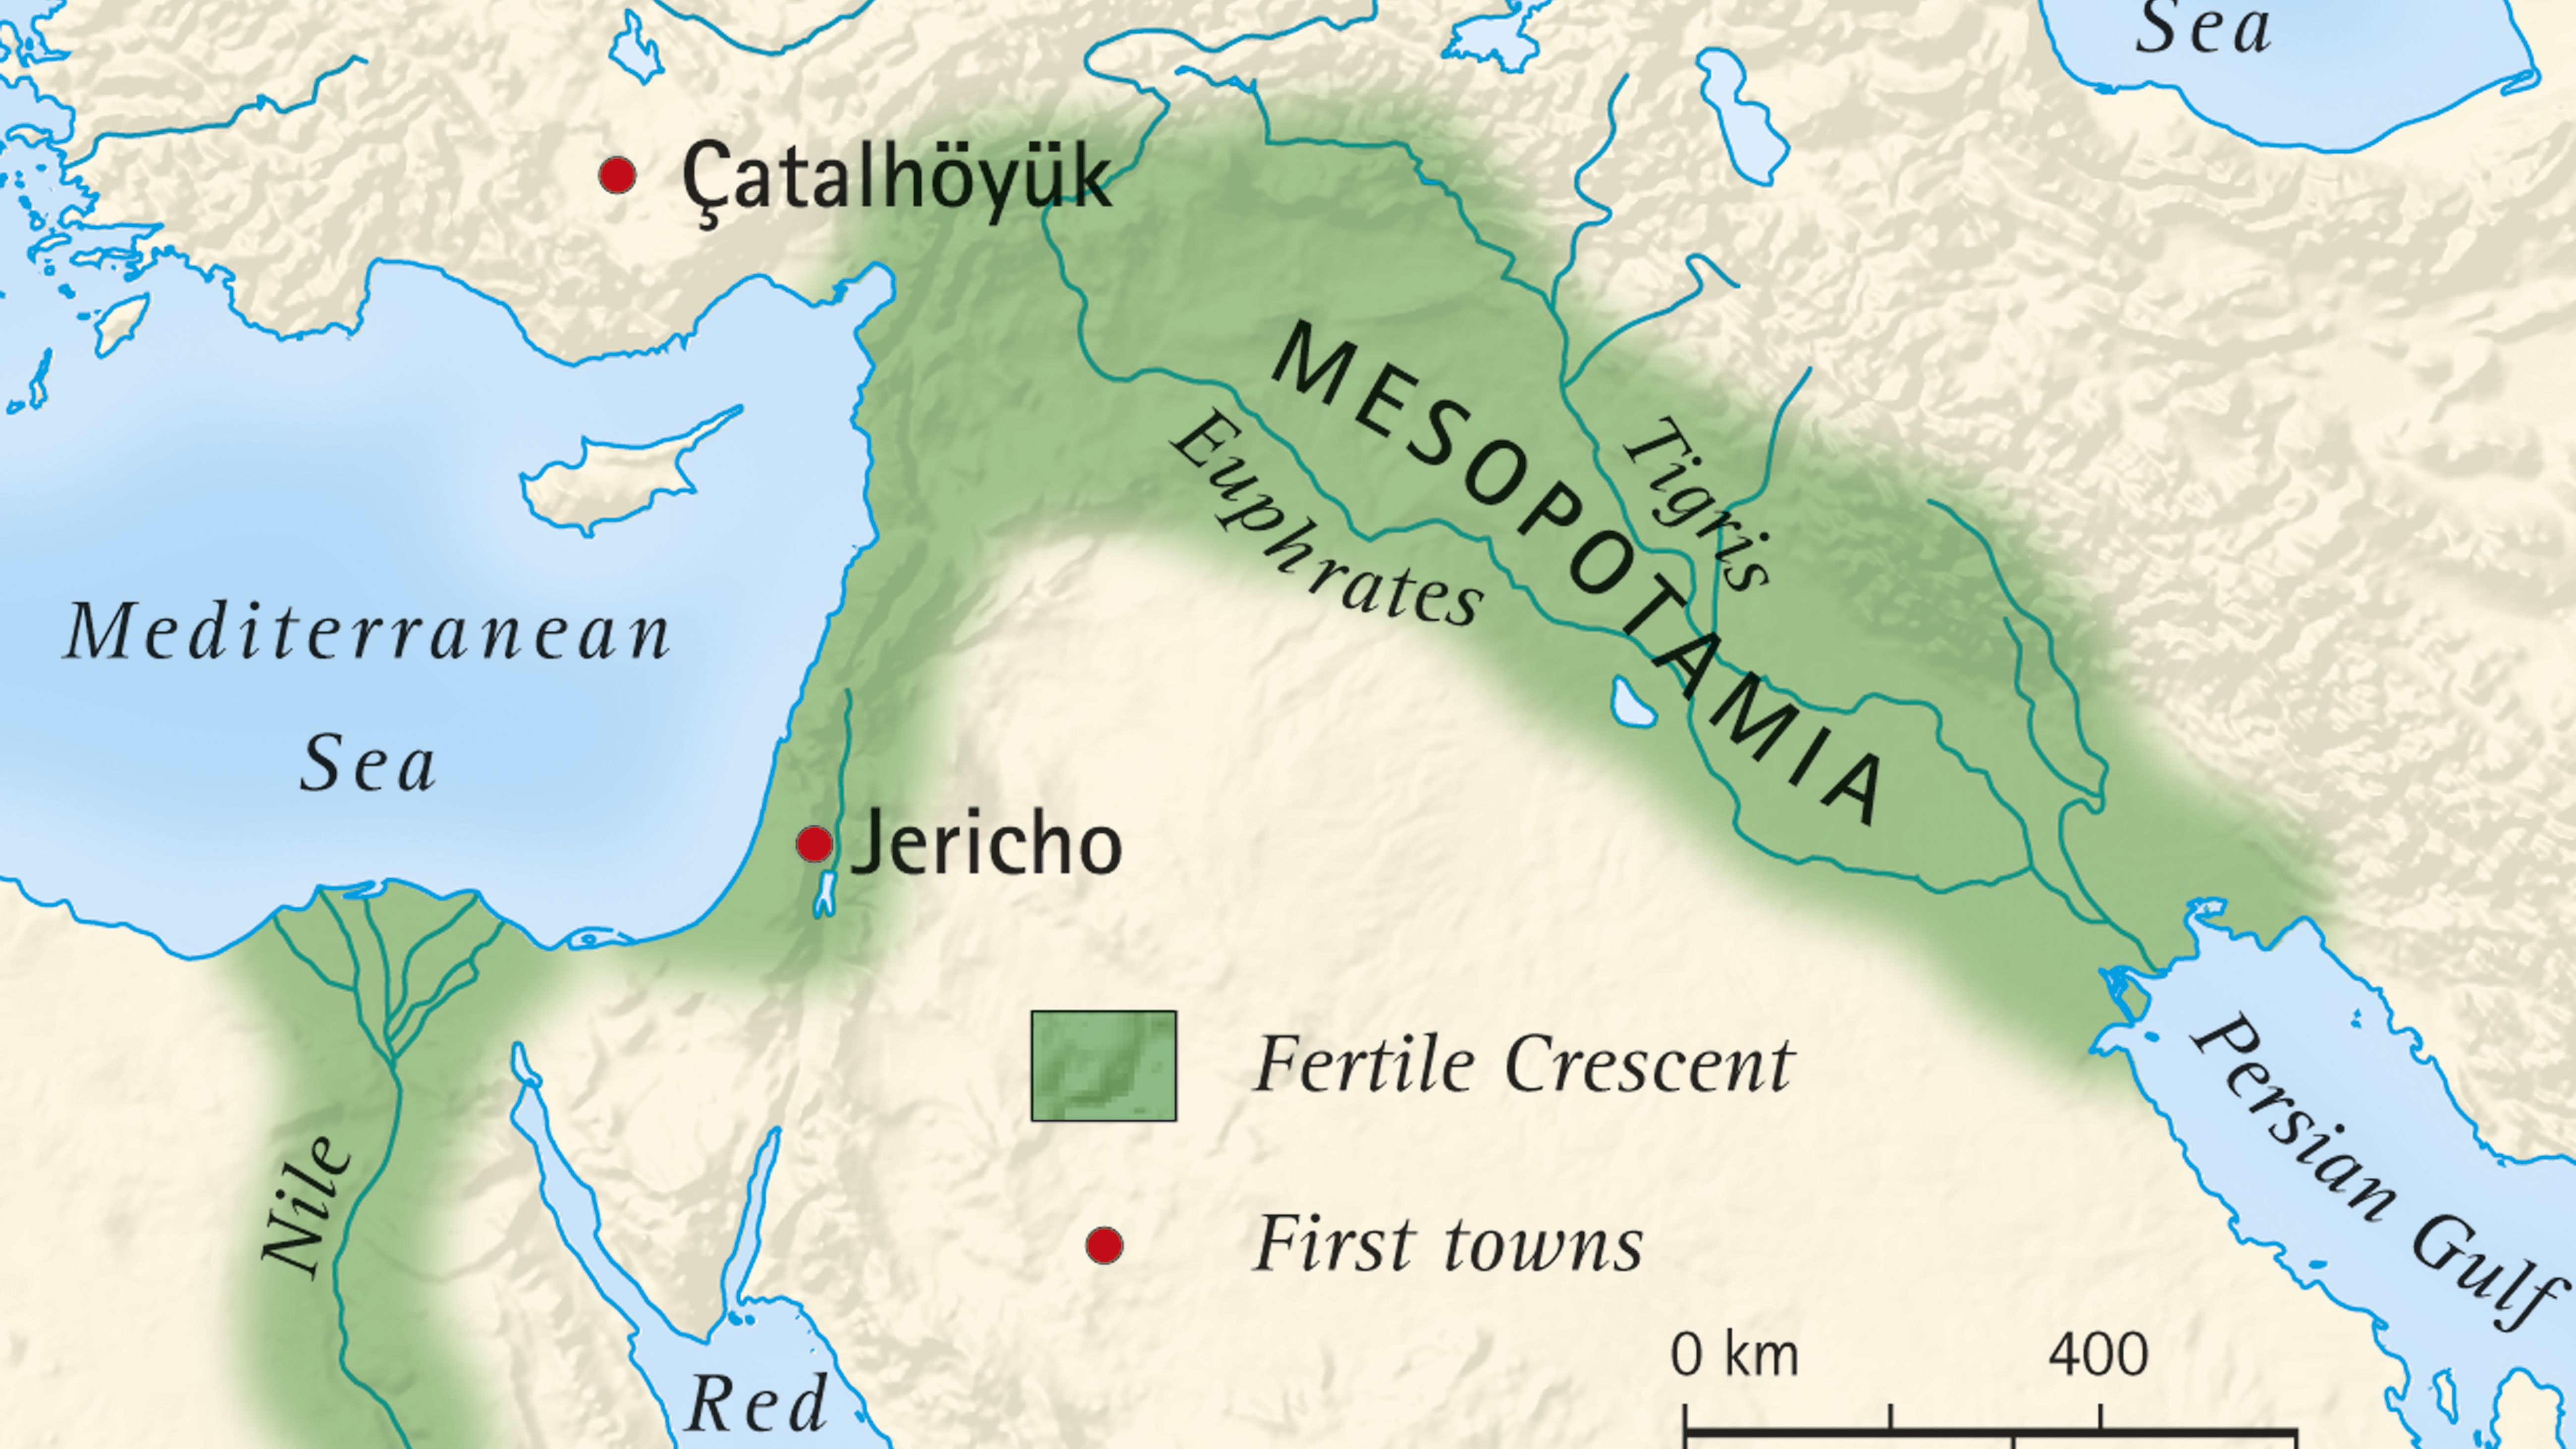 What Was the Fertile Crescent? Red Sea Jordan River Map Of Mediterranean on sea of galilee map jordan river, egypt map jordan river, asia map jordan river, middle east map jordan river, israel map jordan river,